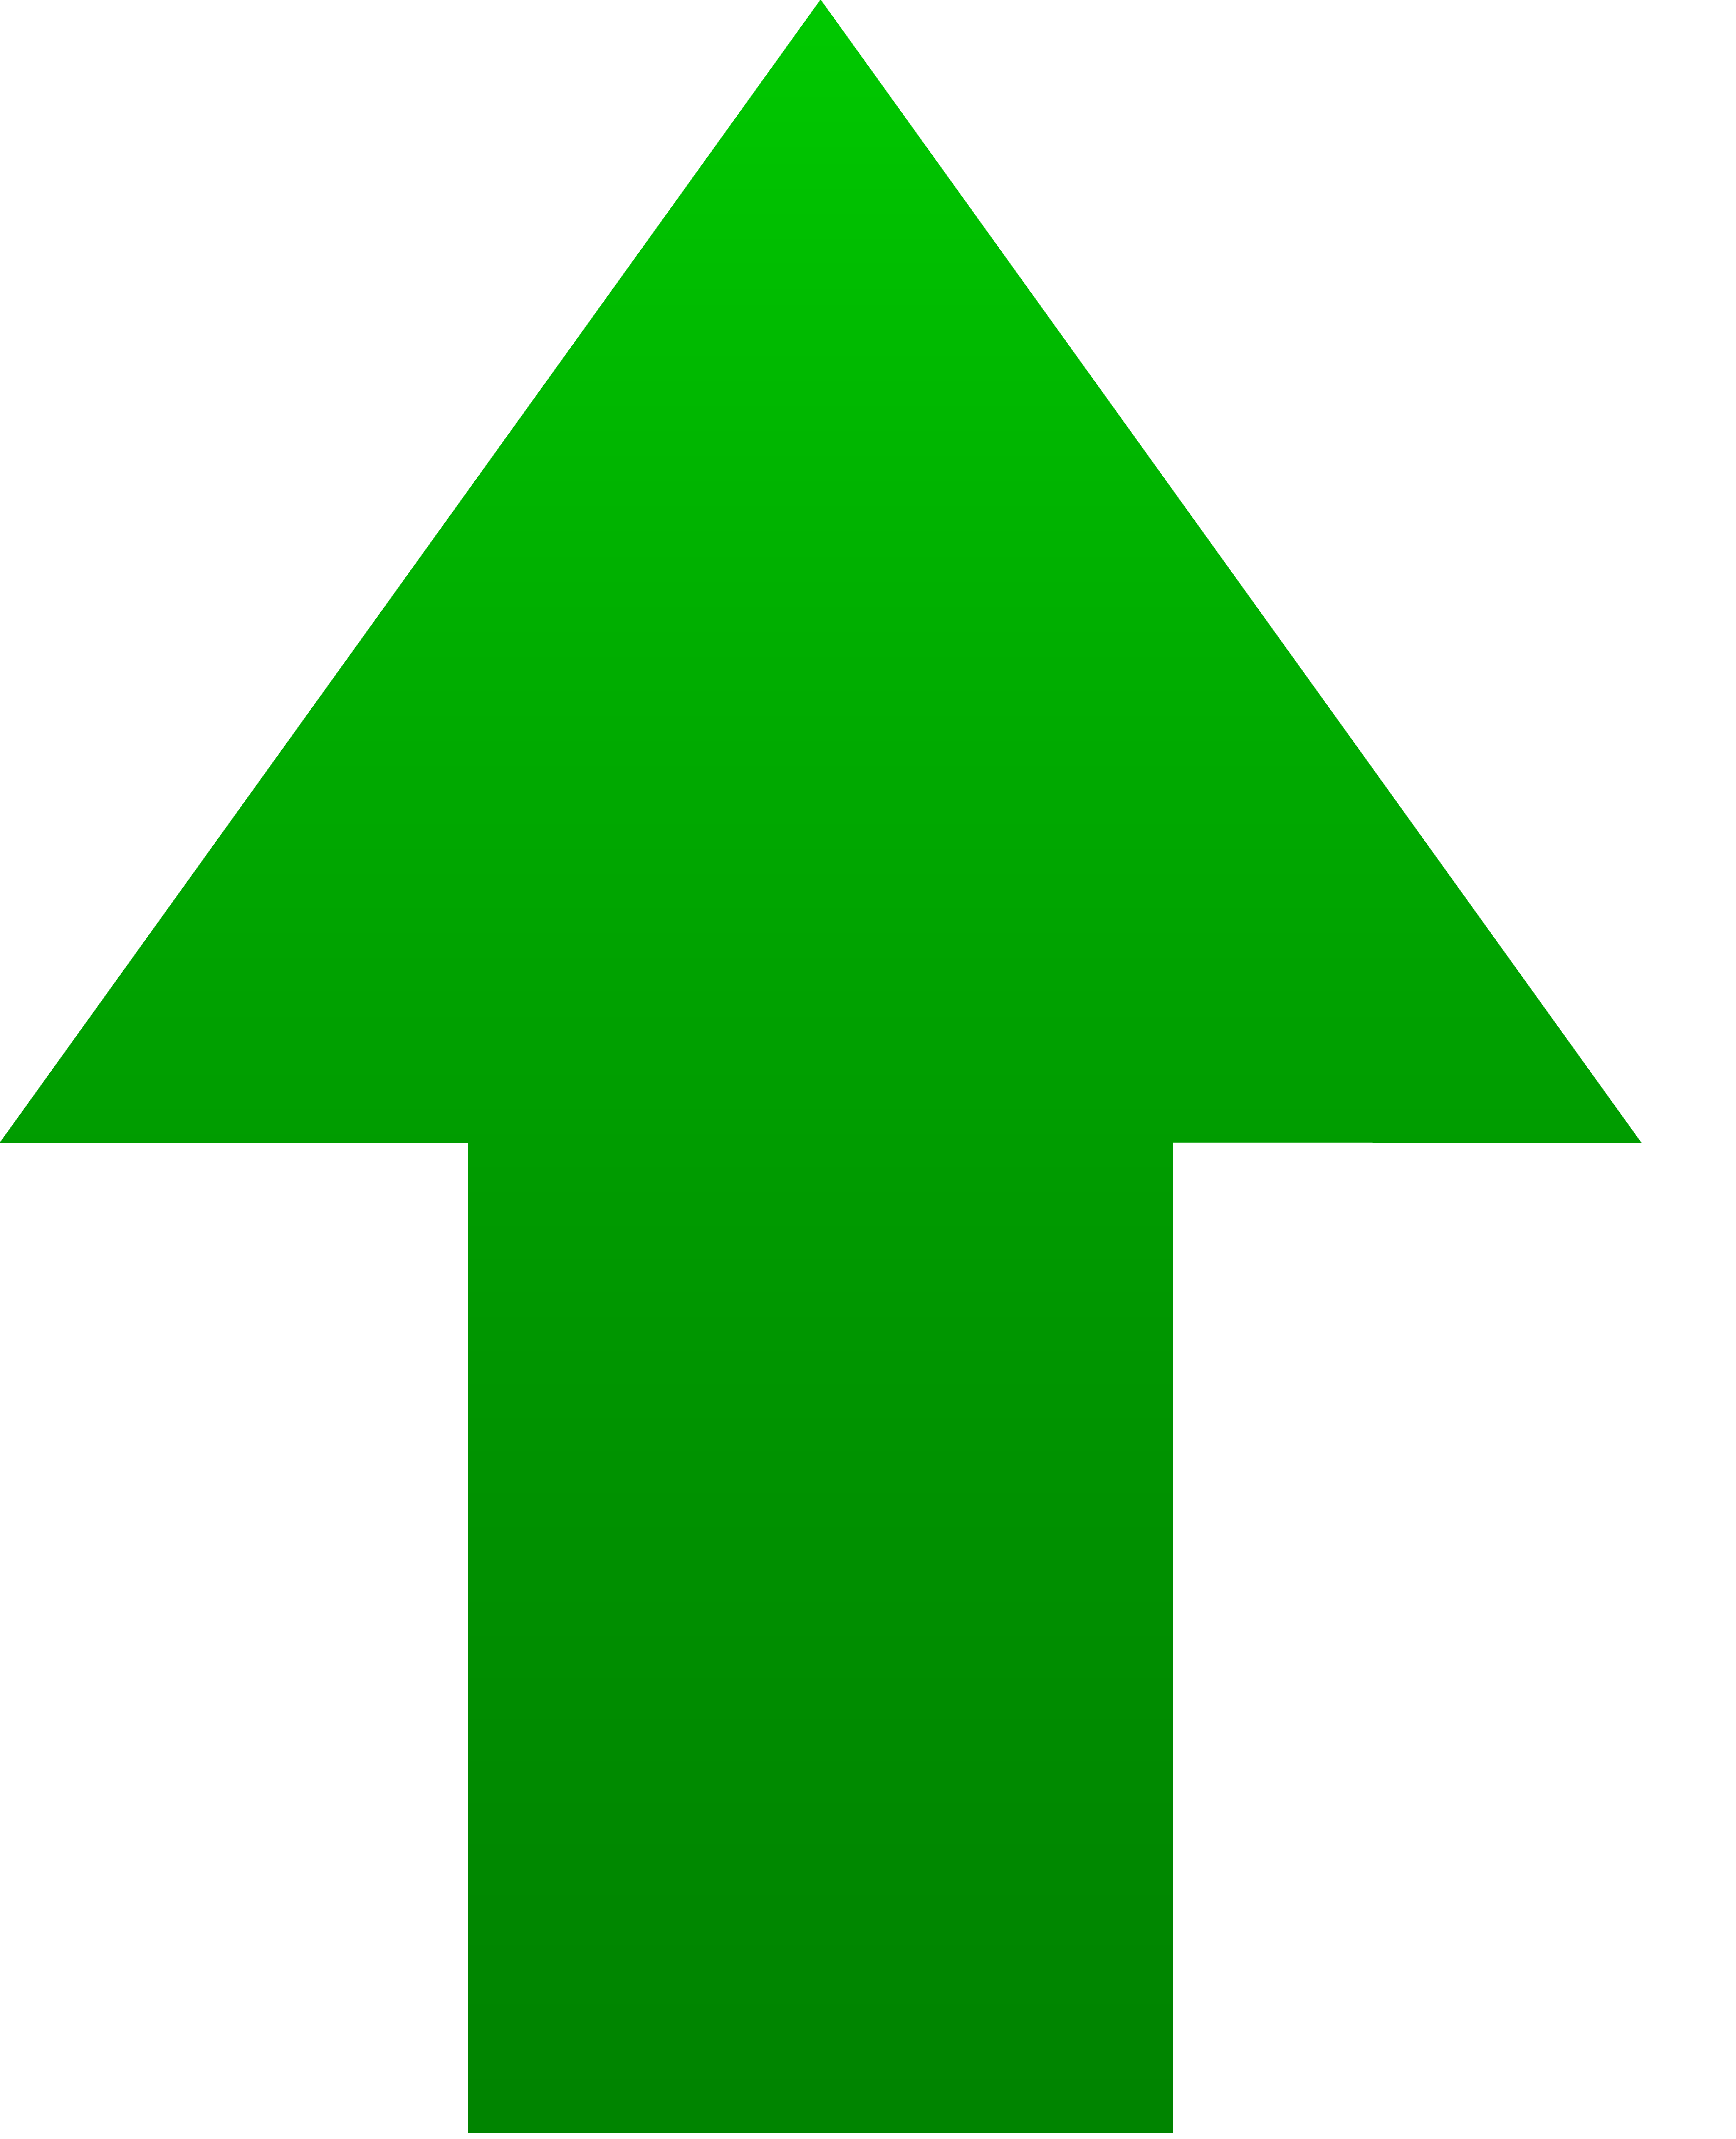 Up Arrow Clipart.